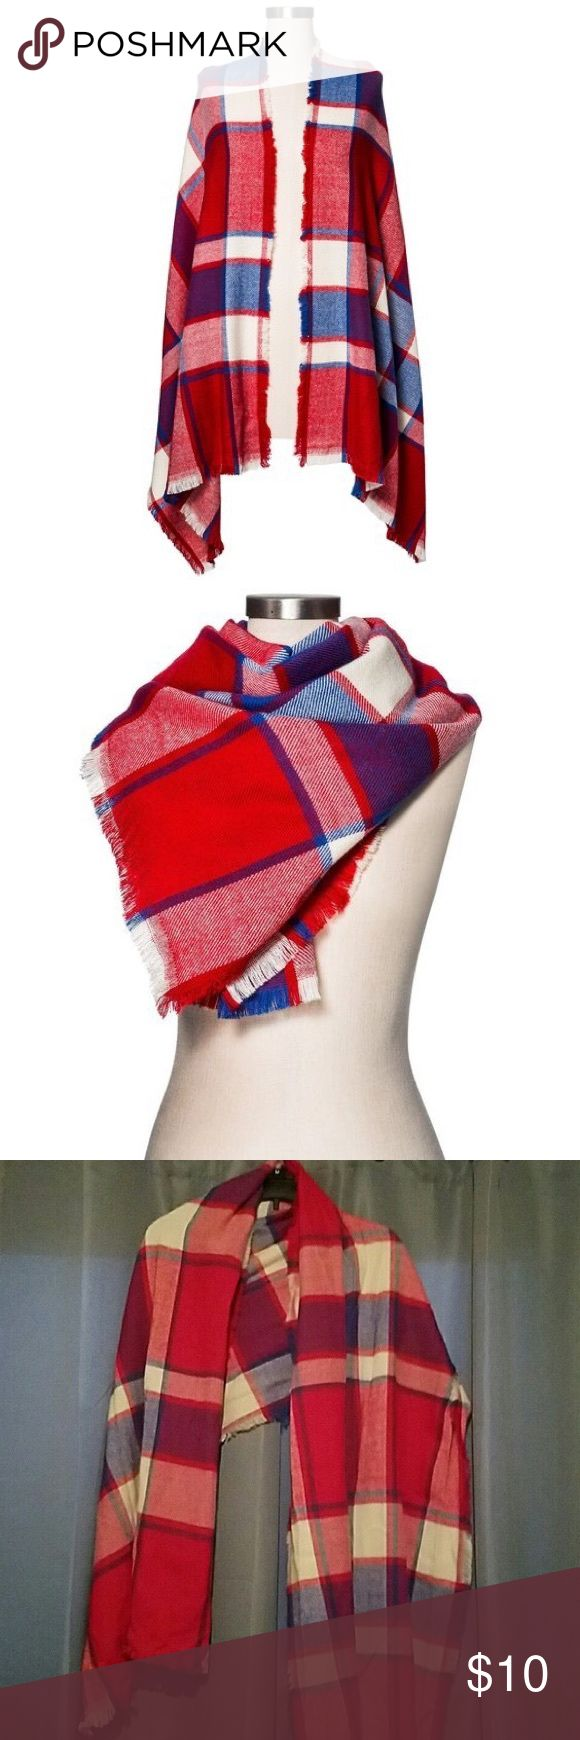 Merona Plaid Blanket Scarf Beautiful red plaid blanket scarf from Merona. NWOT. Measurements upon request. Open to reasonable offers. Merona Accessories Scarves & Wraps